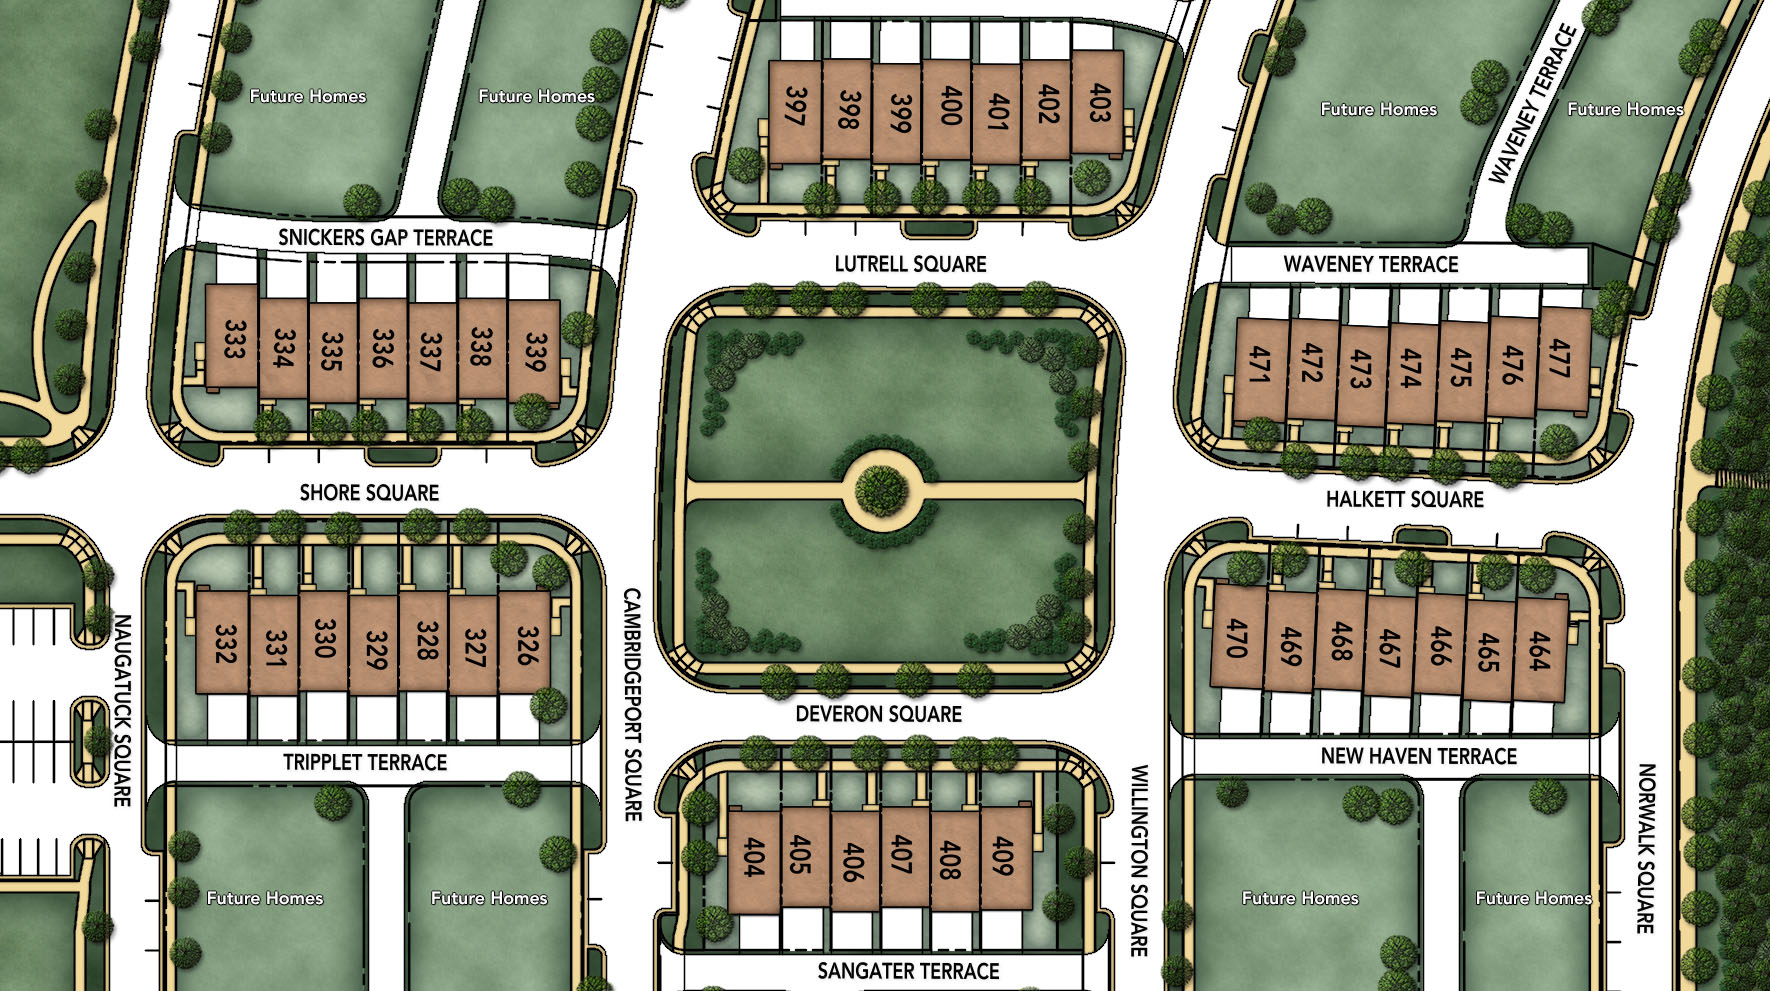 Moorefield Green - The Manors Site Plan I